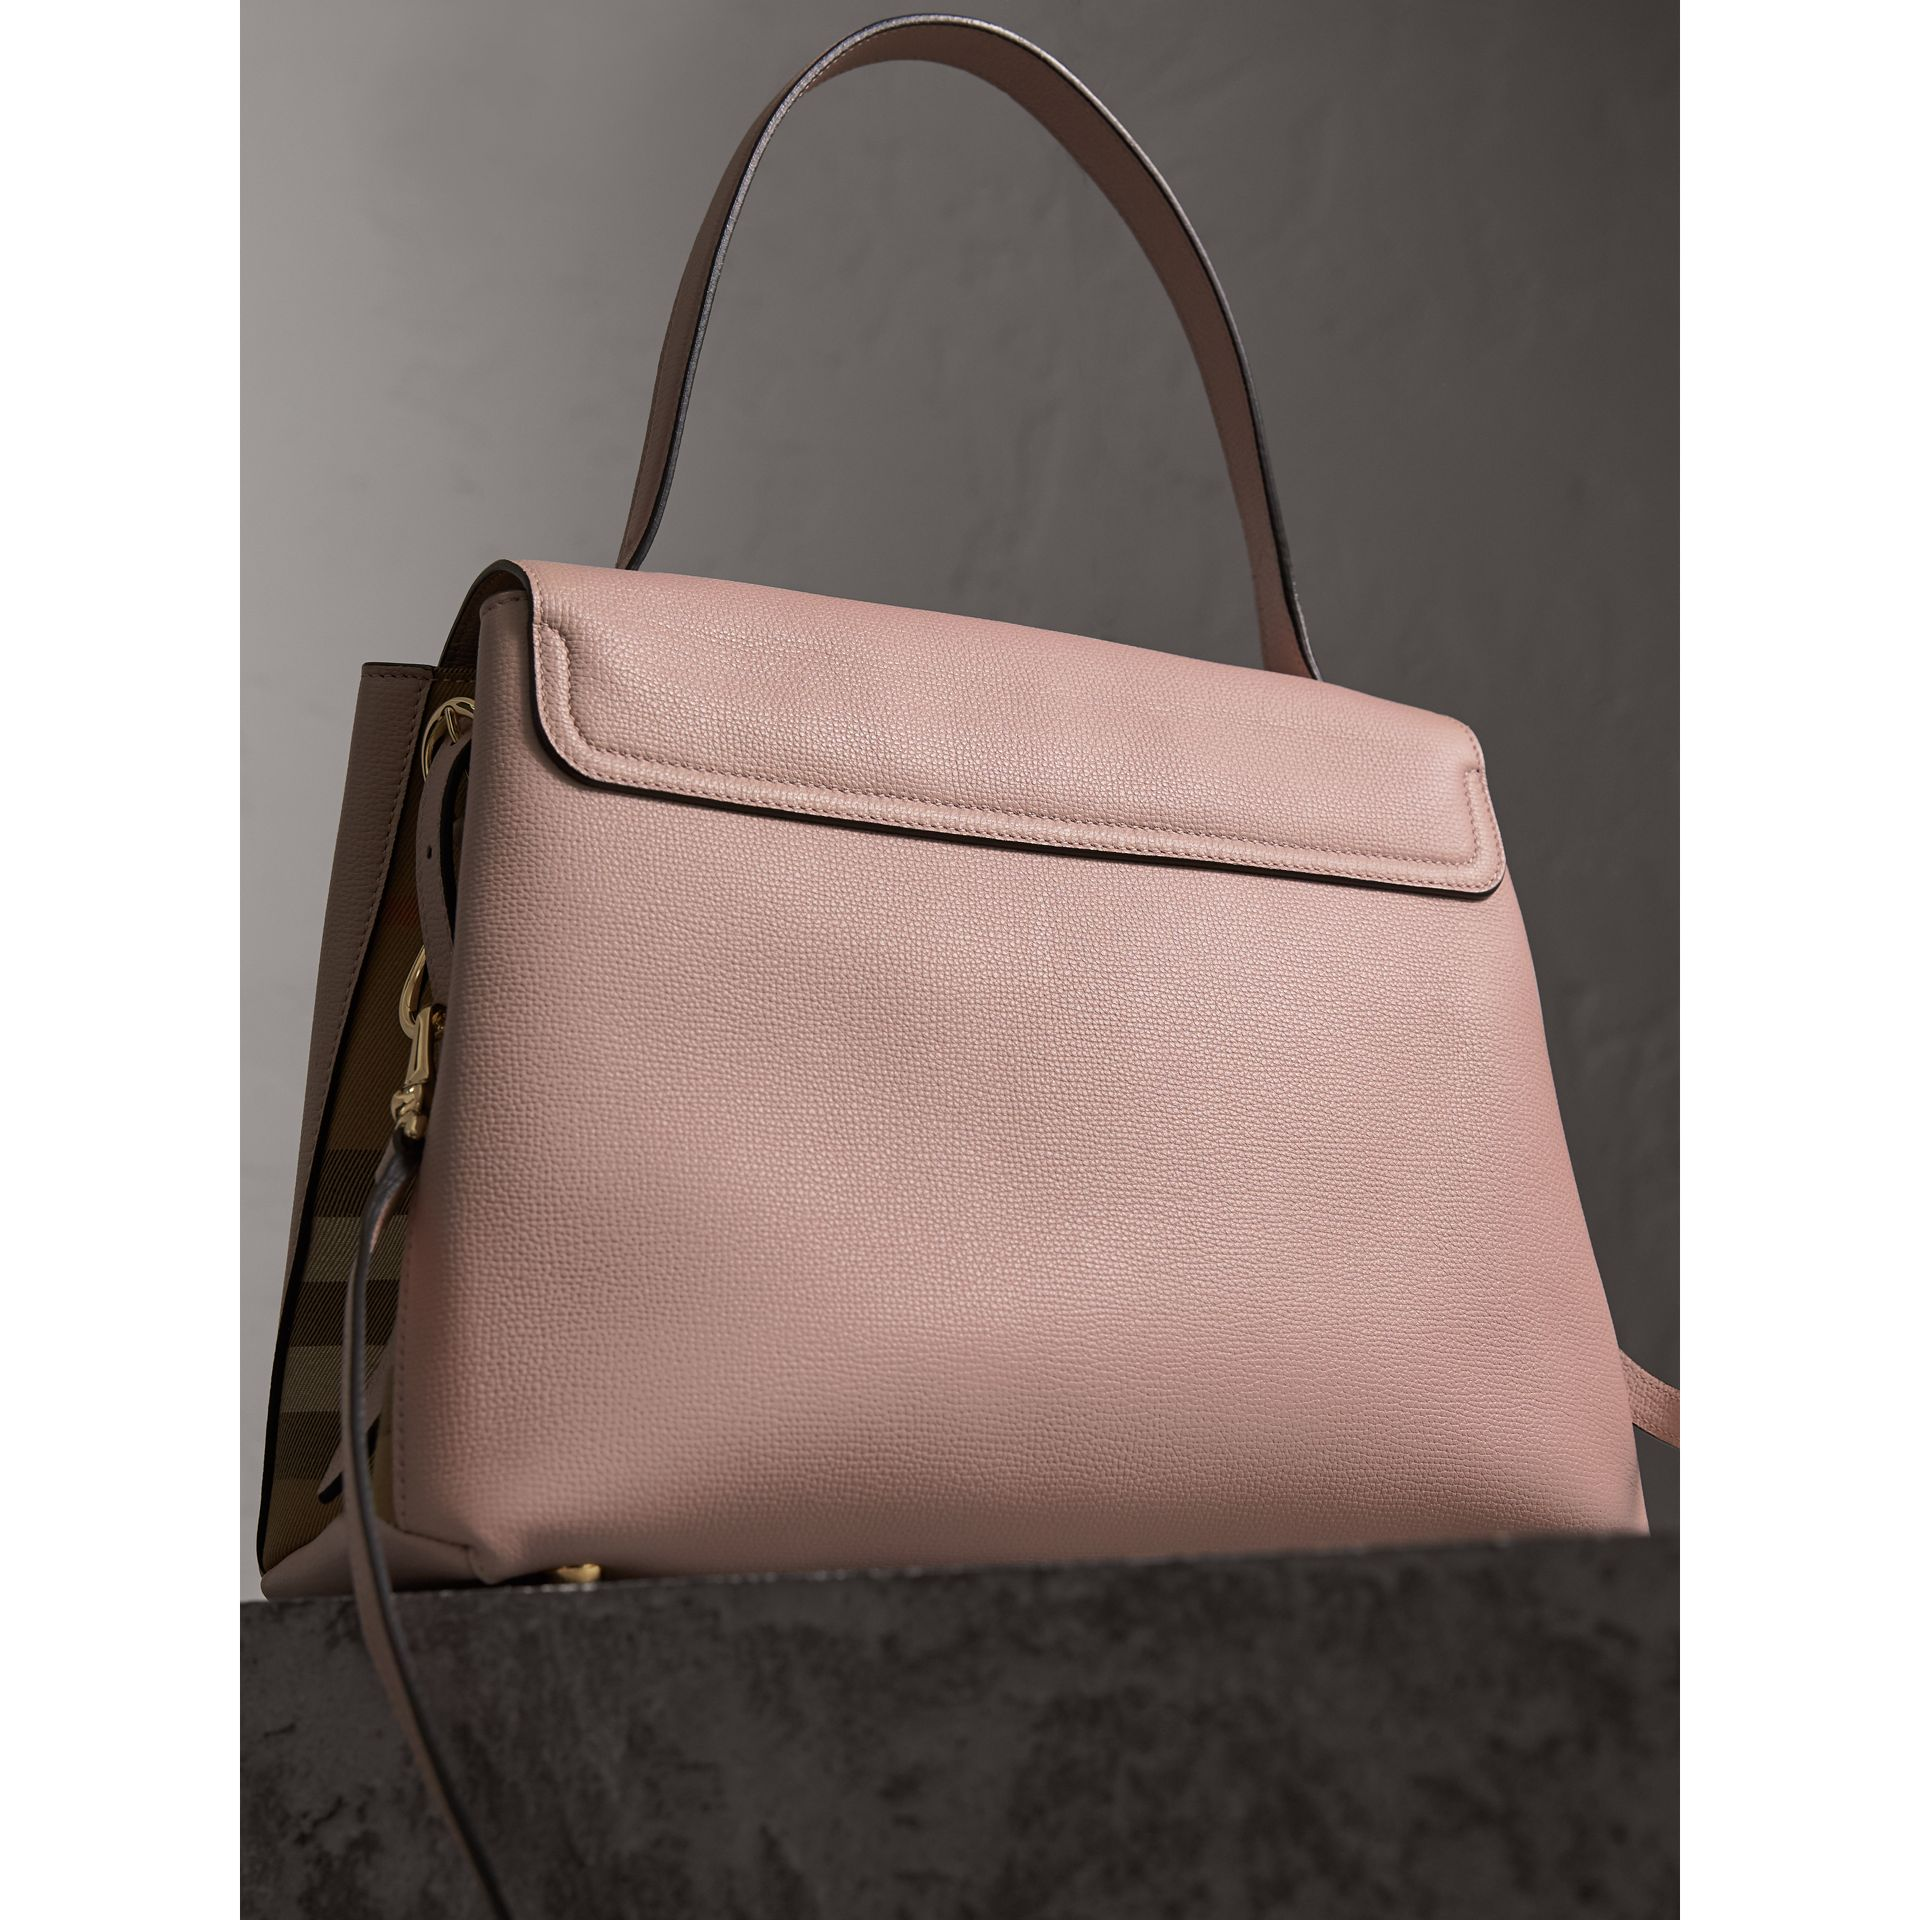 Medium Grainy Leather and House Check Tote Bag in Pale Orchid - Women | Burberry - gallery image 4